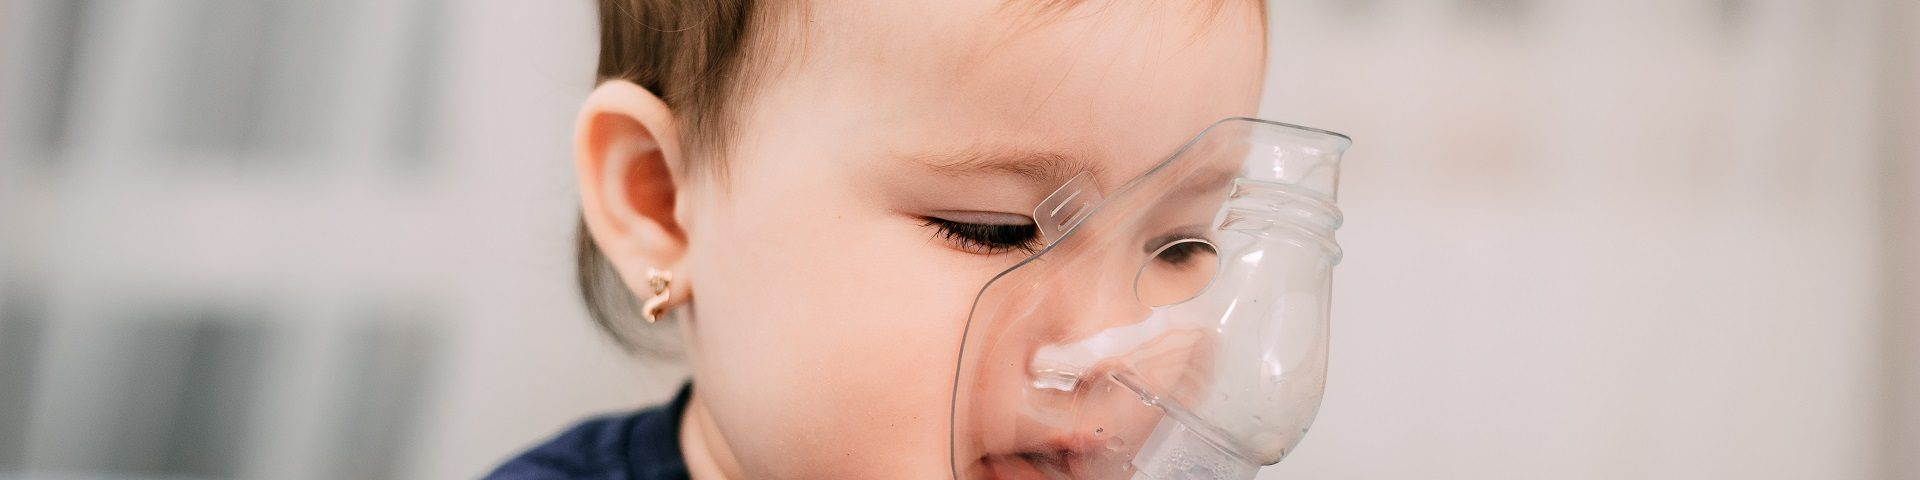 Baby girl using nebulizer to relieve cough